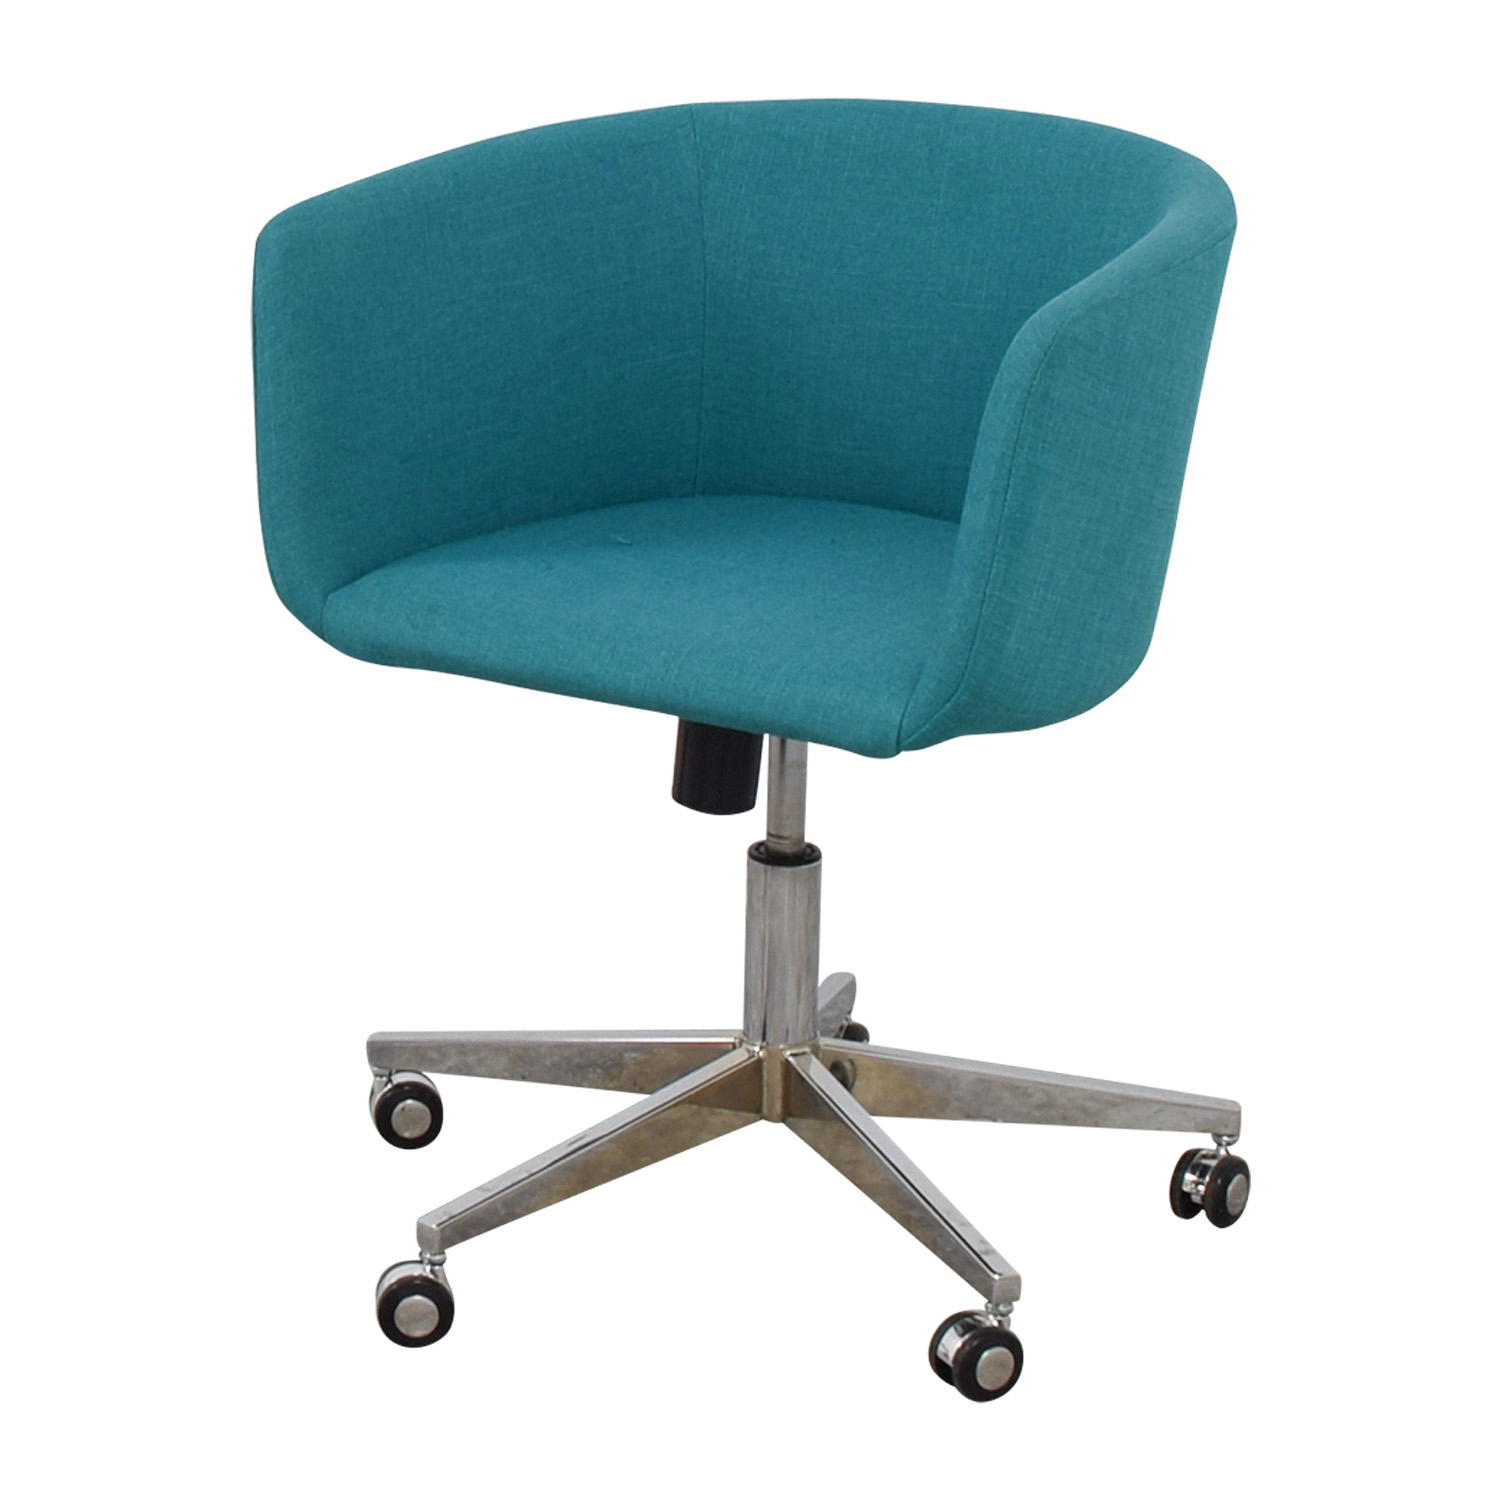 desk chair teal white wedding chairs 37 off cb2 with castors